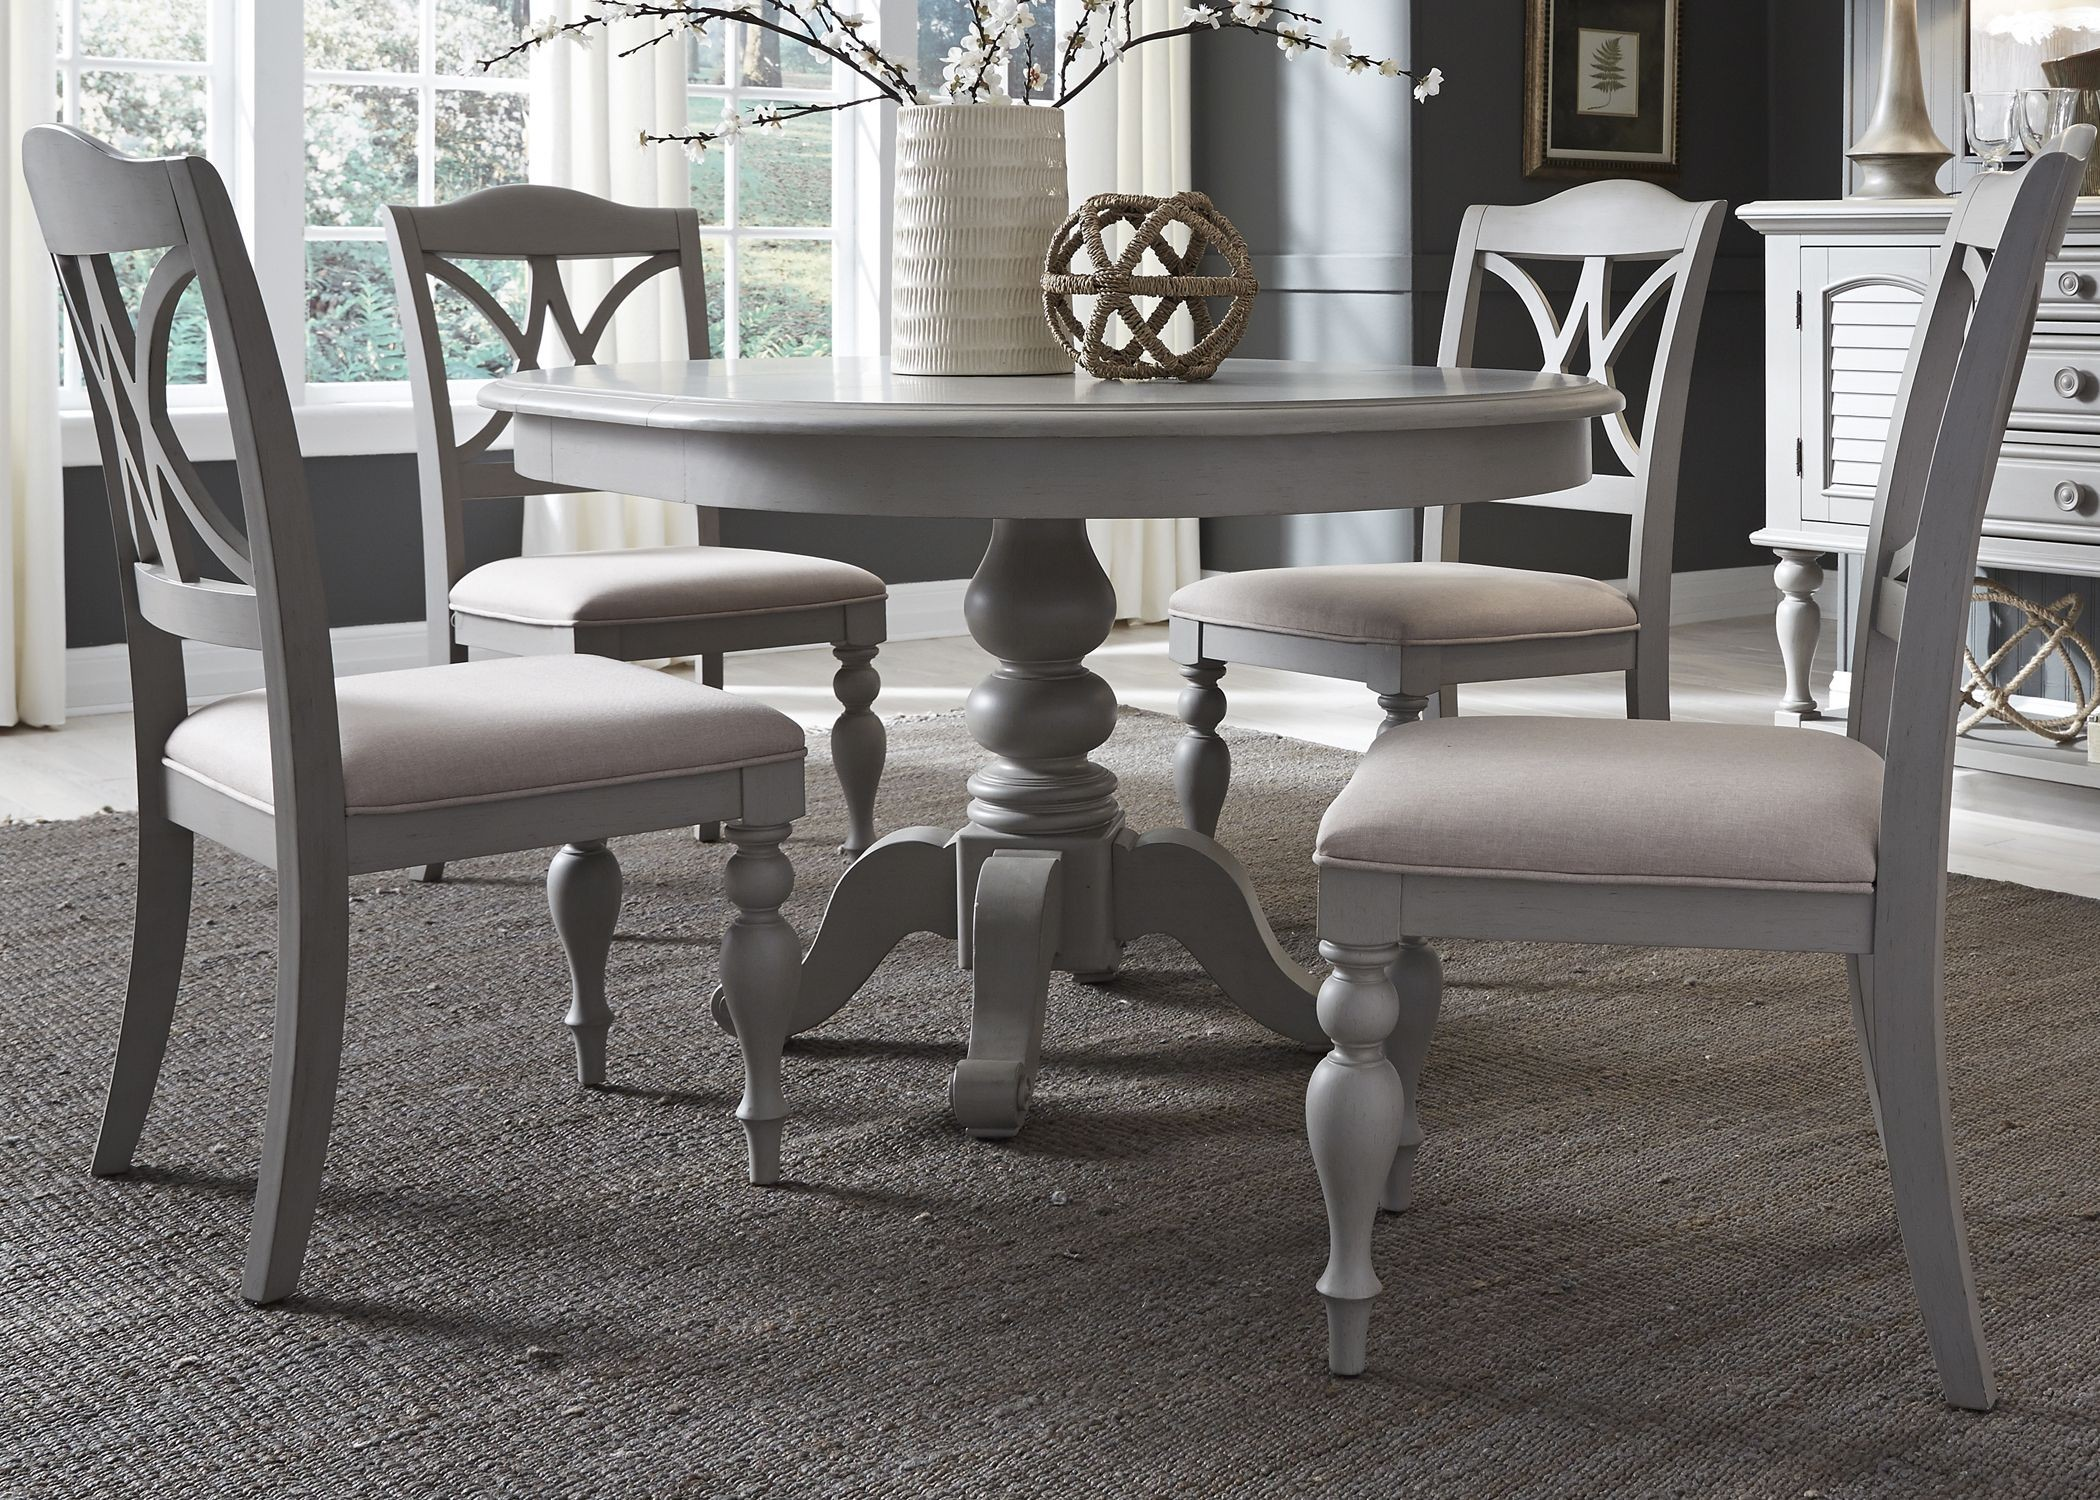 Summer house dove grey round dining room set from liberty coleman furniture